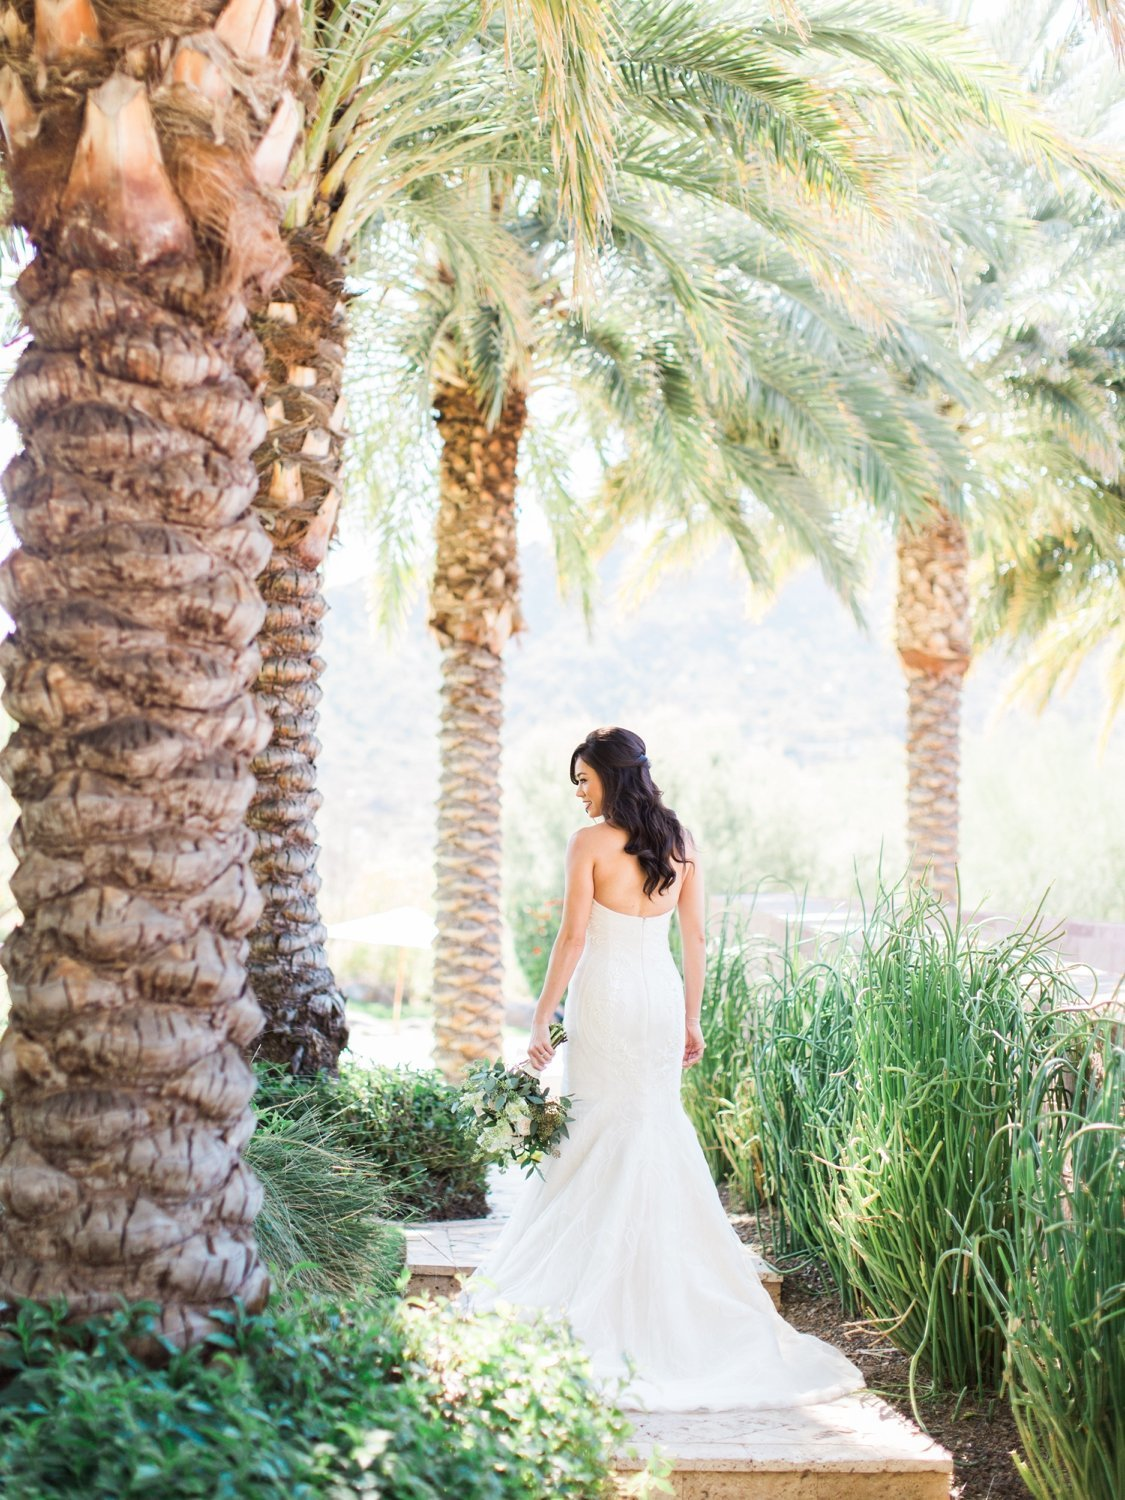 wedding-at-palm-lake-oasis-photographer-phoenix_0869